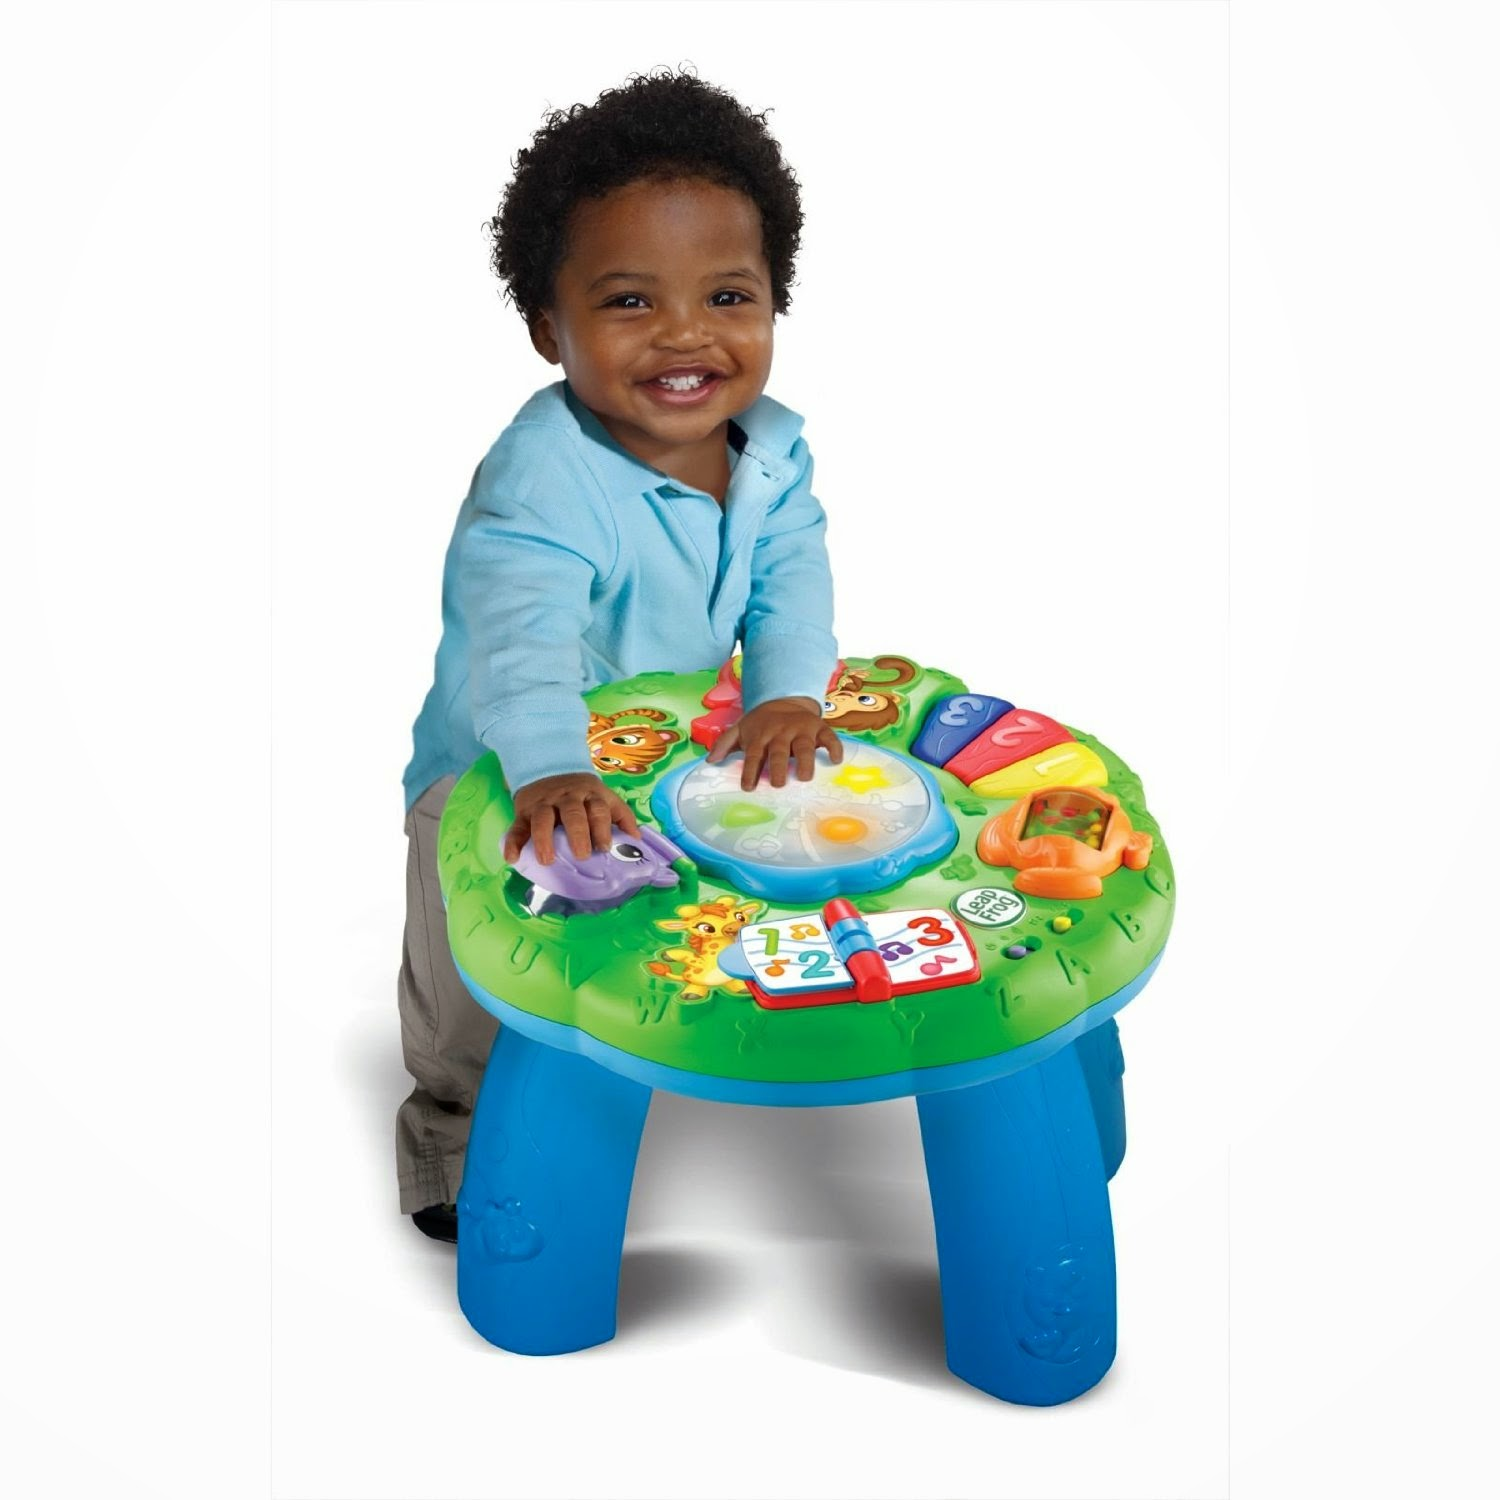 Buy LeapFrog Animal Adventure Learning Table Rs. 930 only at Amazon.